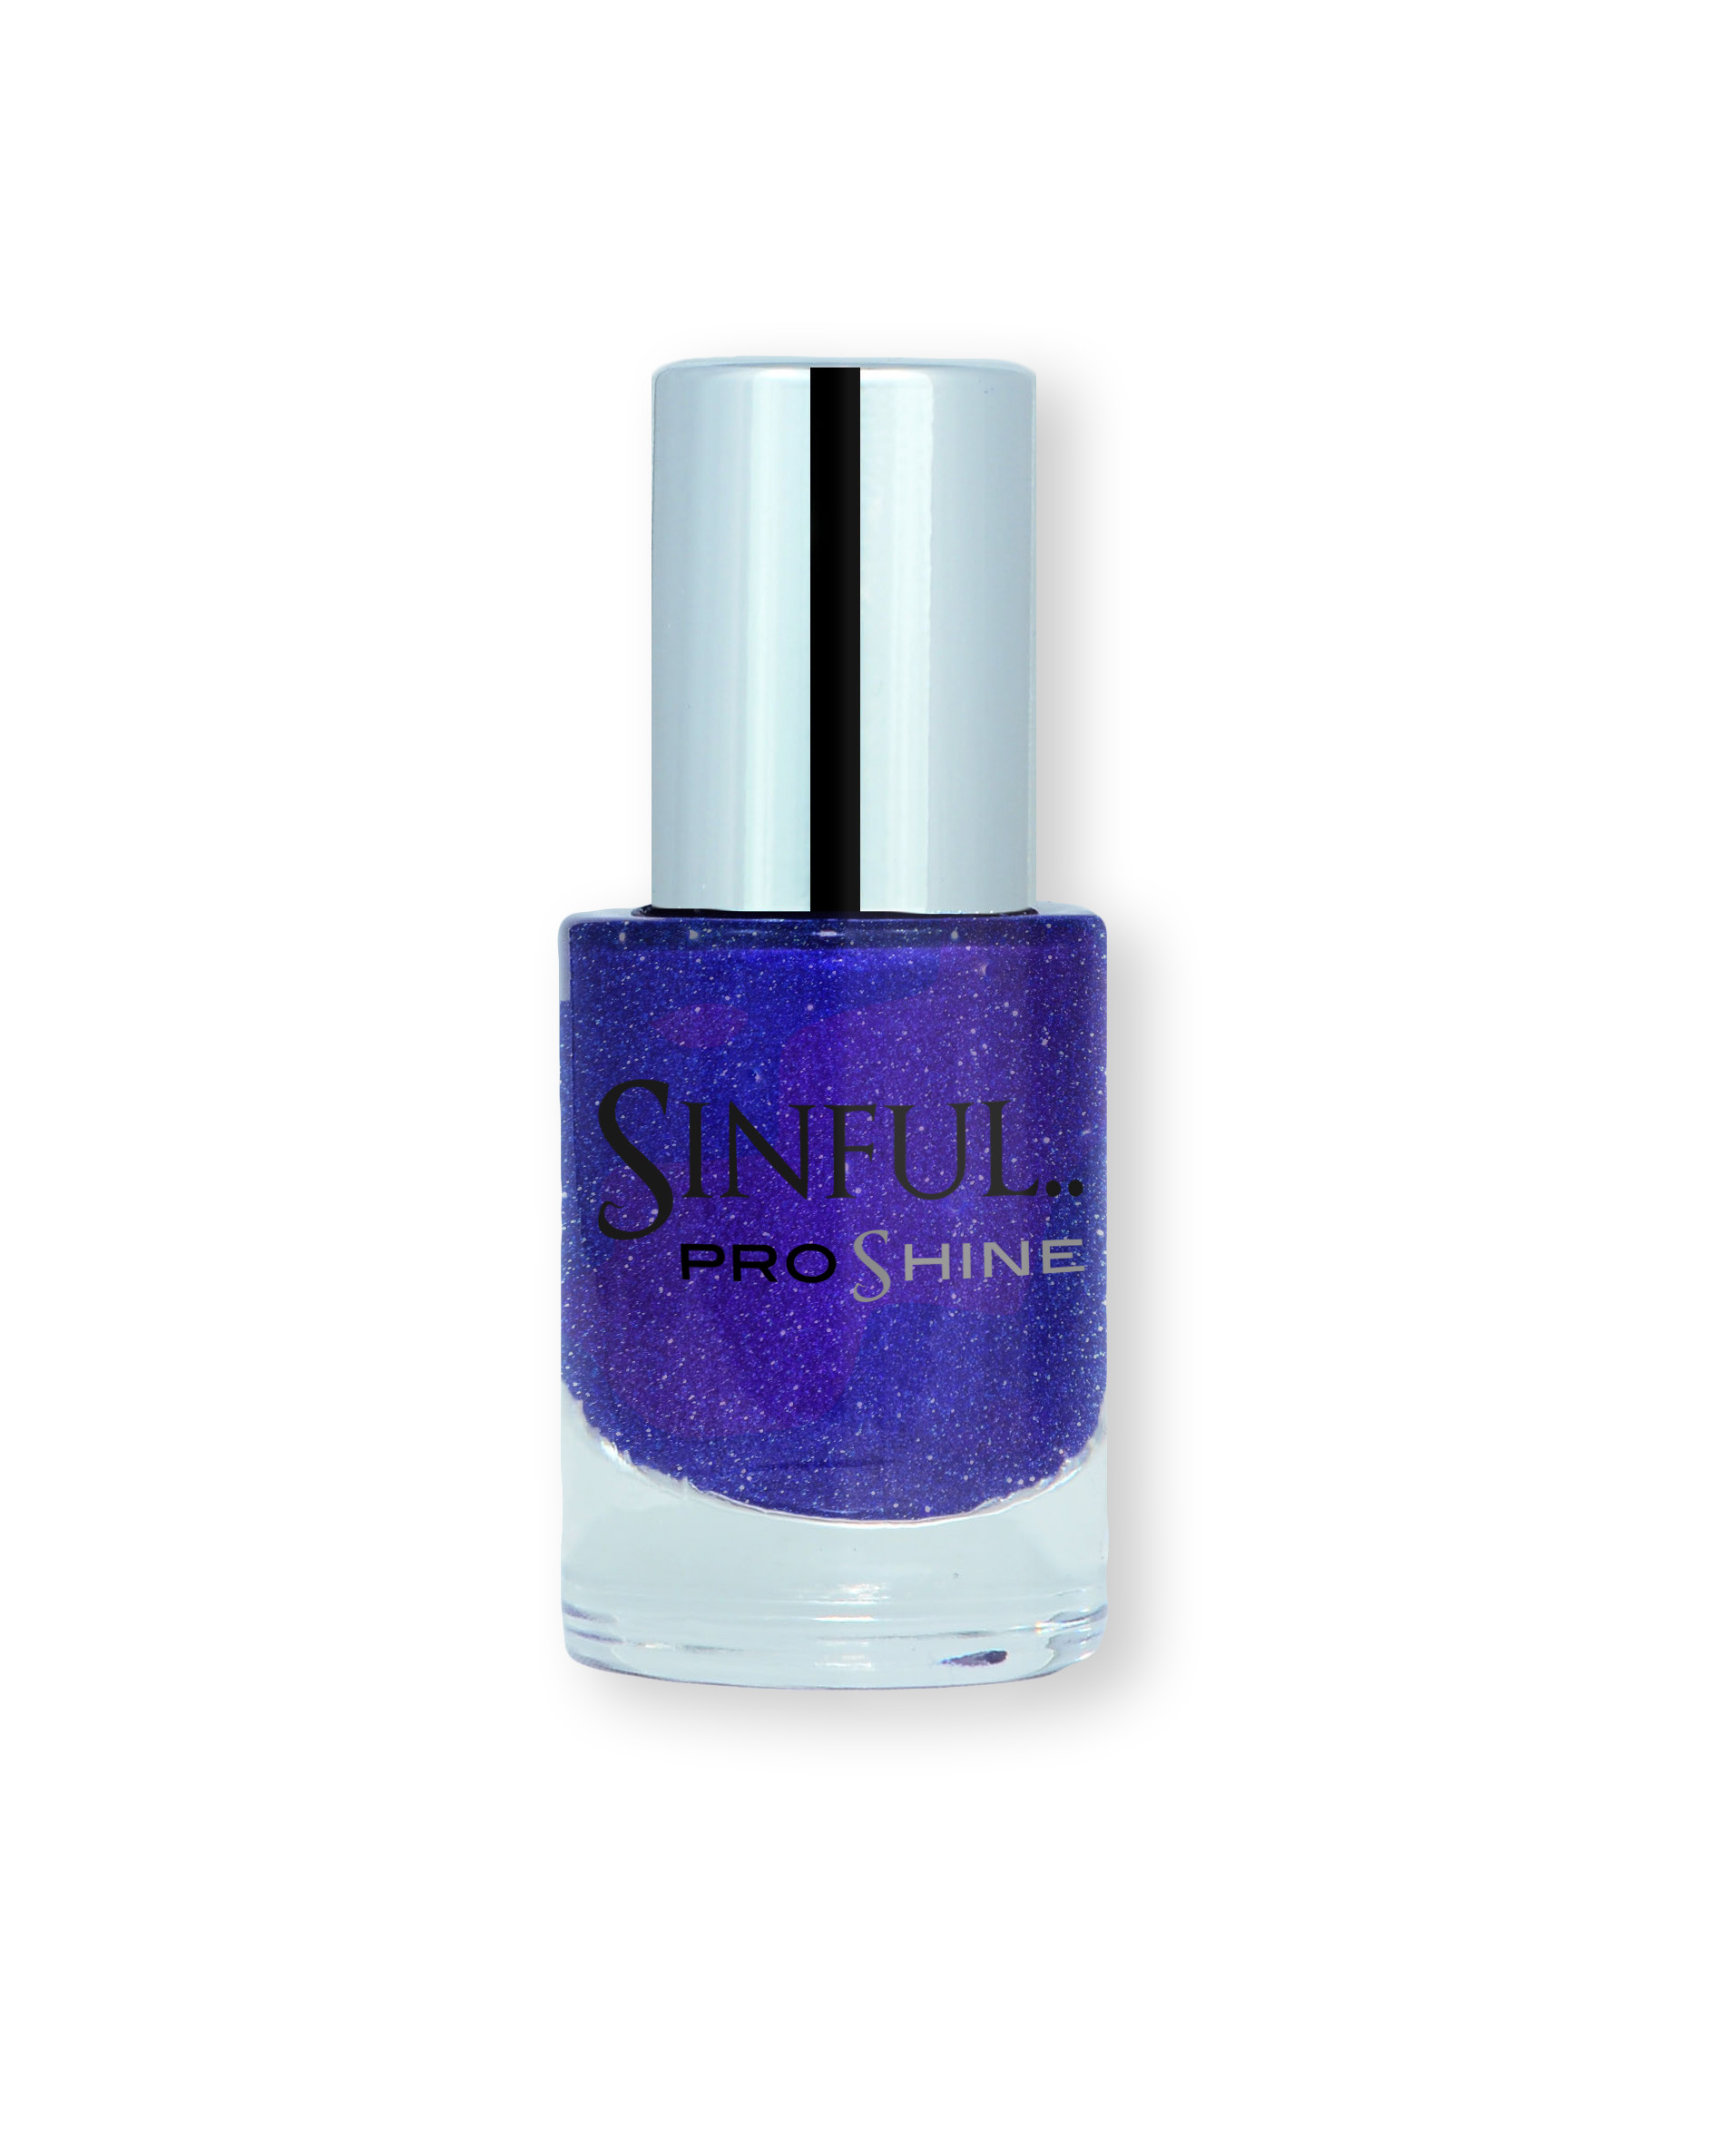 Sinful PROshine is a revolution into top spec imitation gel-like formula, easy application, full coverage and a sleek finish. Spoil yourself with the choice of 42 shades, expertly formulated with the finest grade of pigments. Russian Roulette: Dark indigo and navy pearl